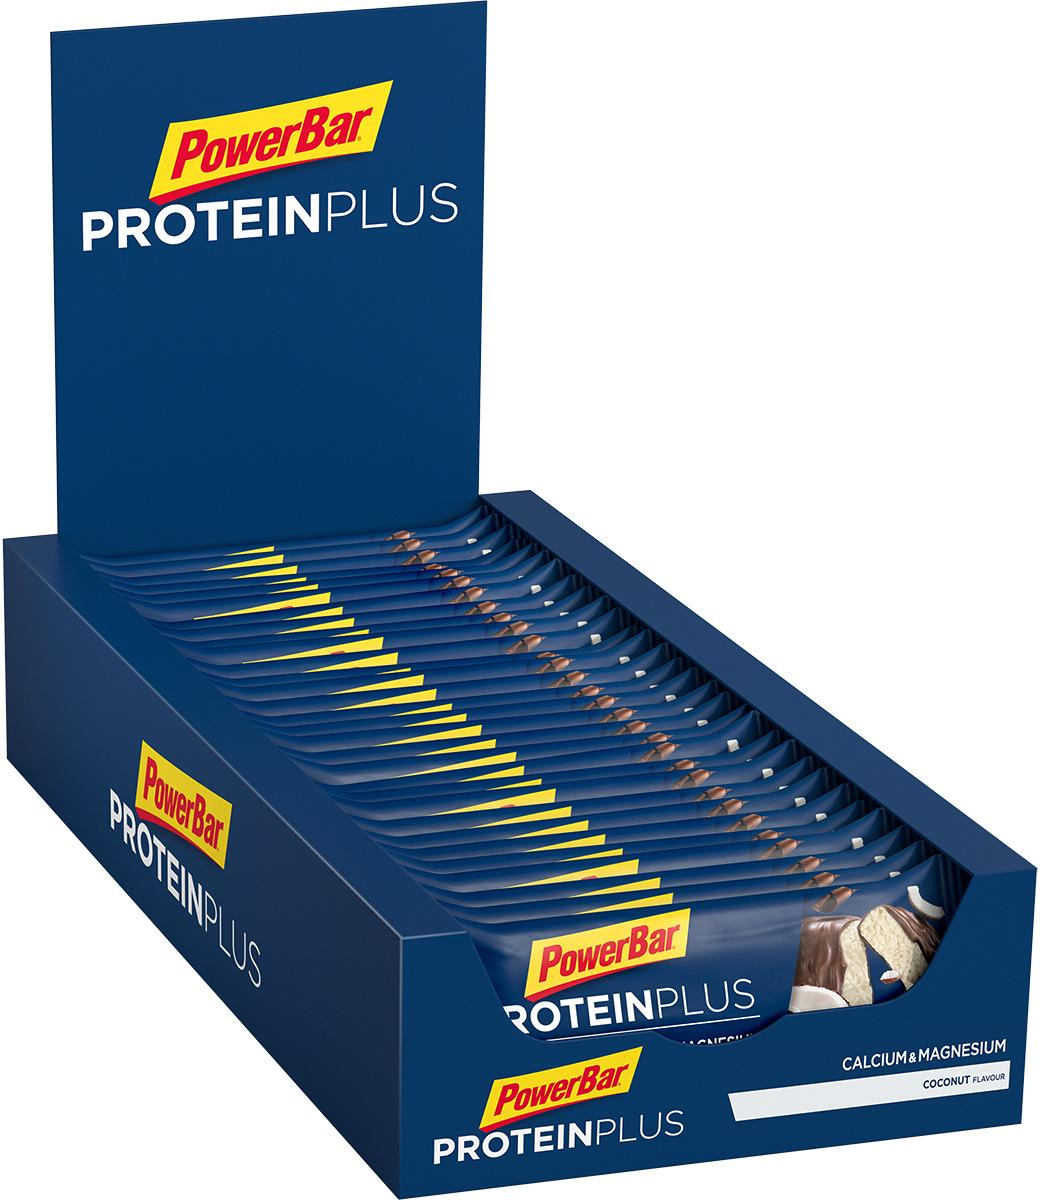 PowerBar Protein Plus + Minerals, 30 x 35 g bars, coconut